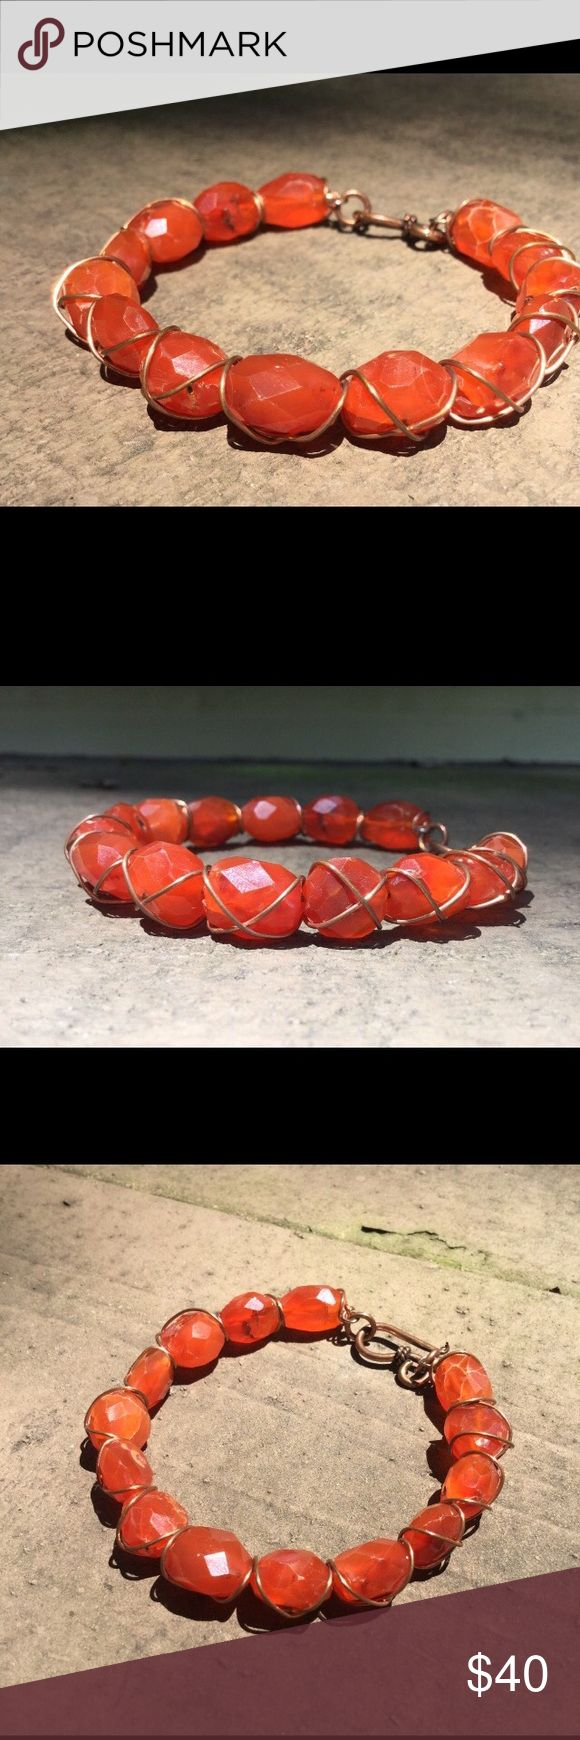 Carnelian gemstone bangle DETAILS - measures 7 inches in length - I have added a large lobster claw clasp for easy fastening. Kind Designs Online Jewelry Bracelets